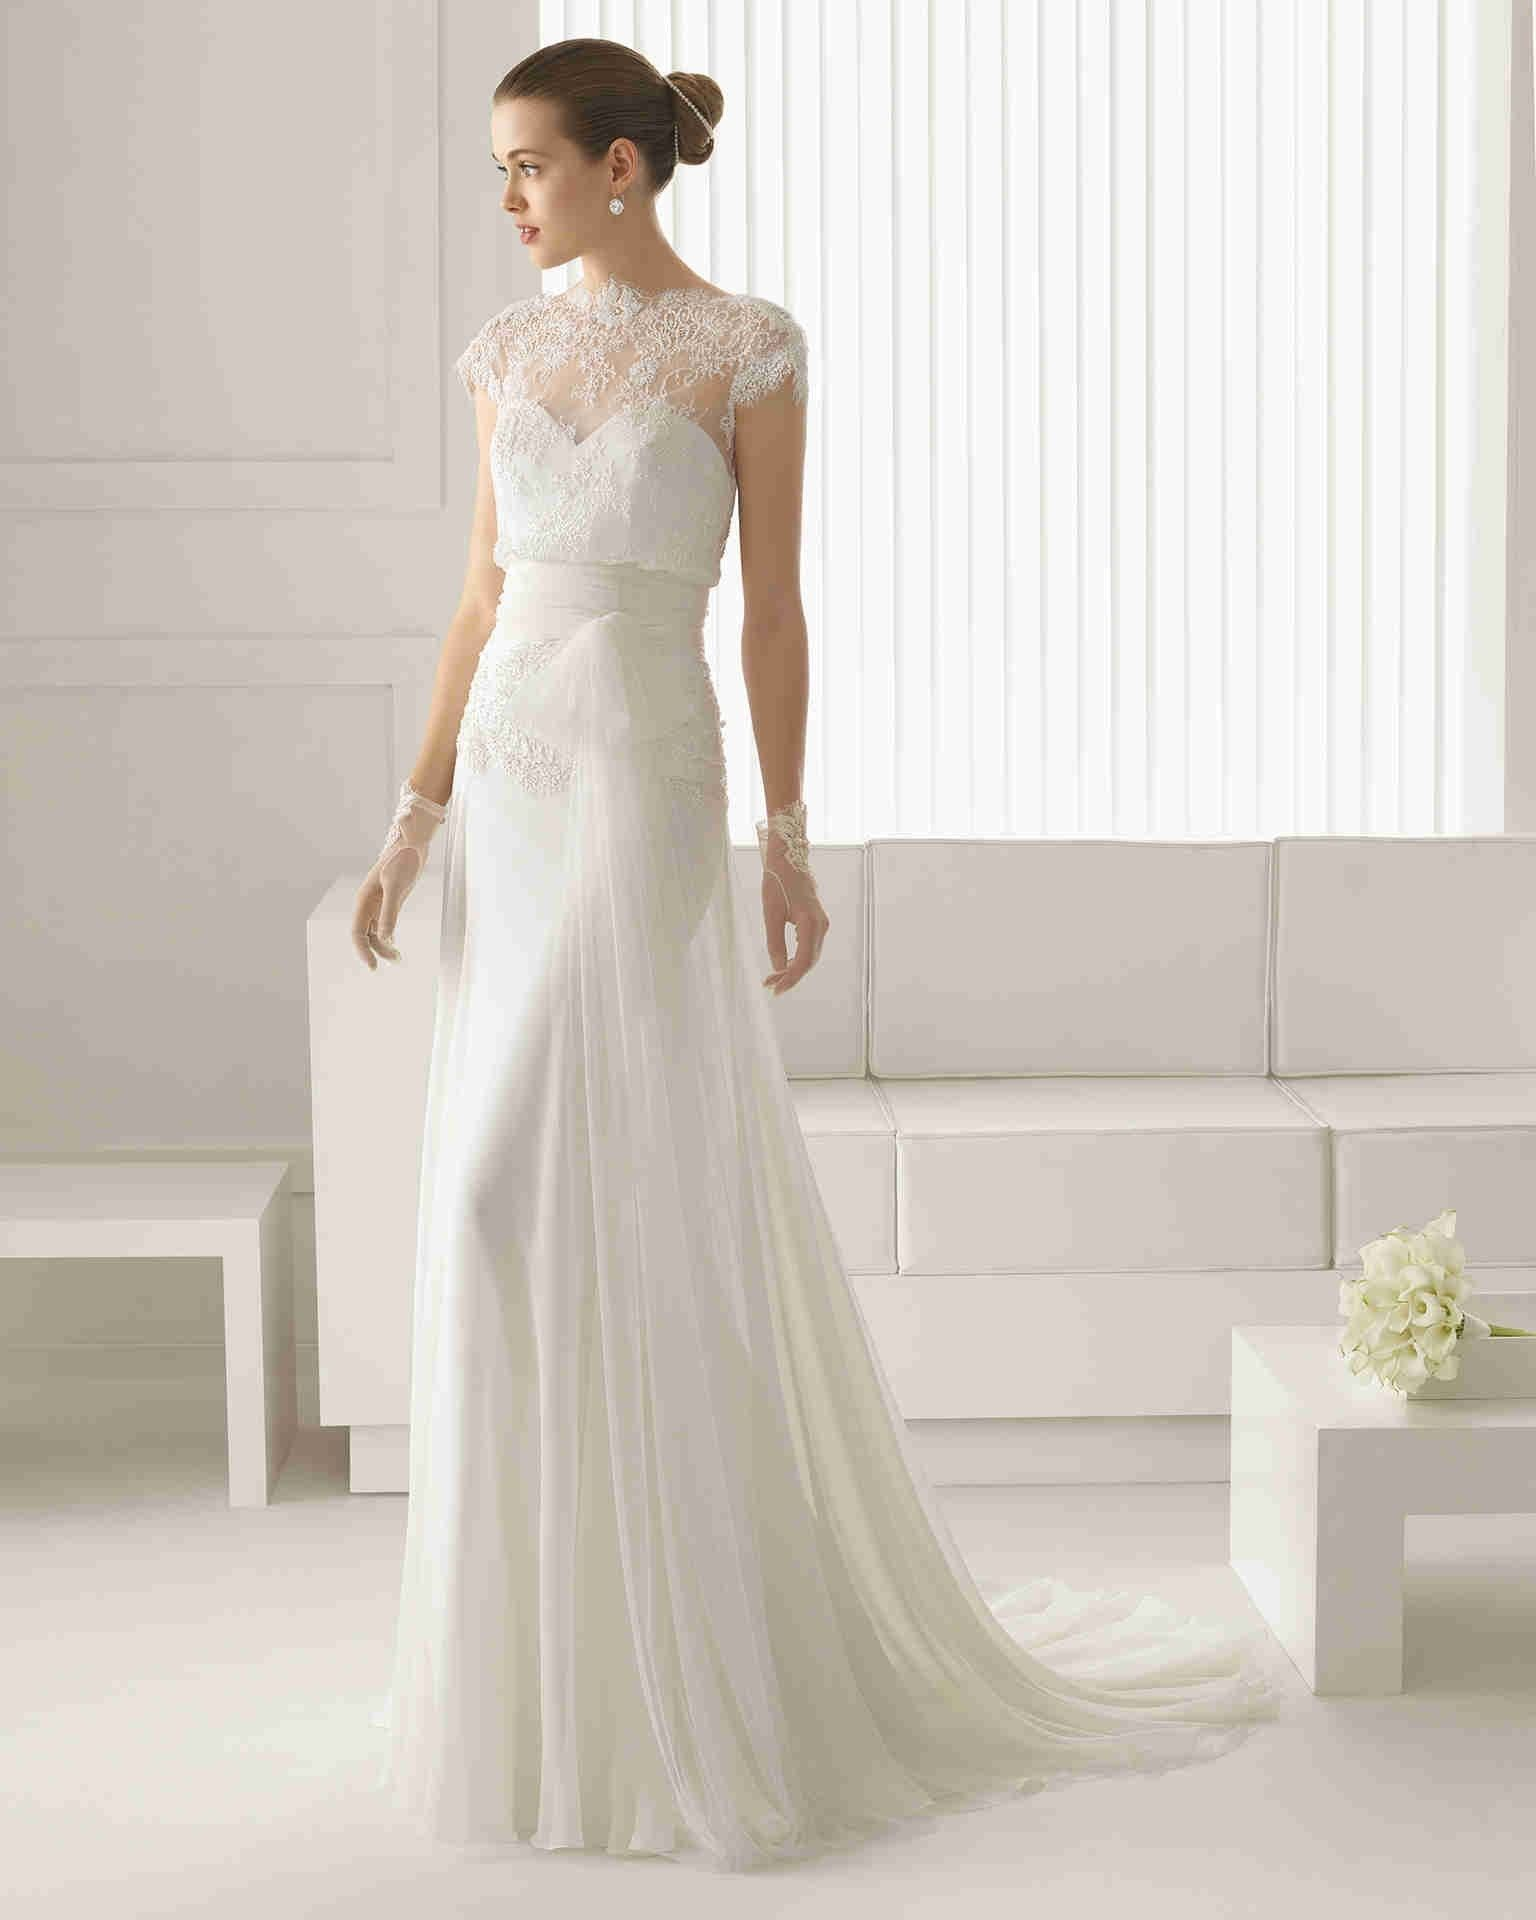 Romance Illusion Short Sleeve Sheath Column Bridal Wedding Dress